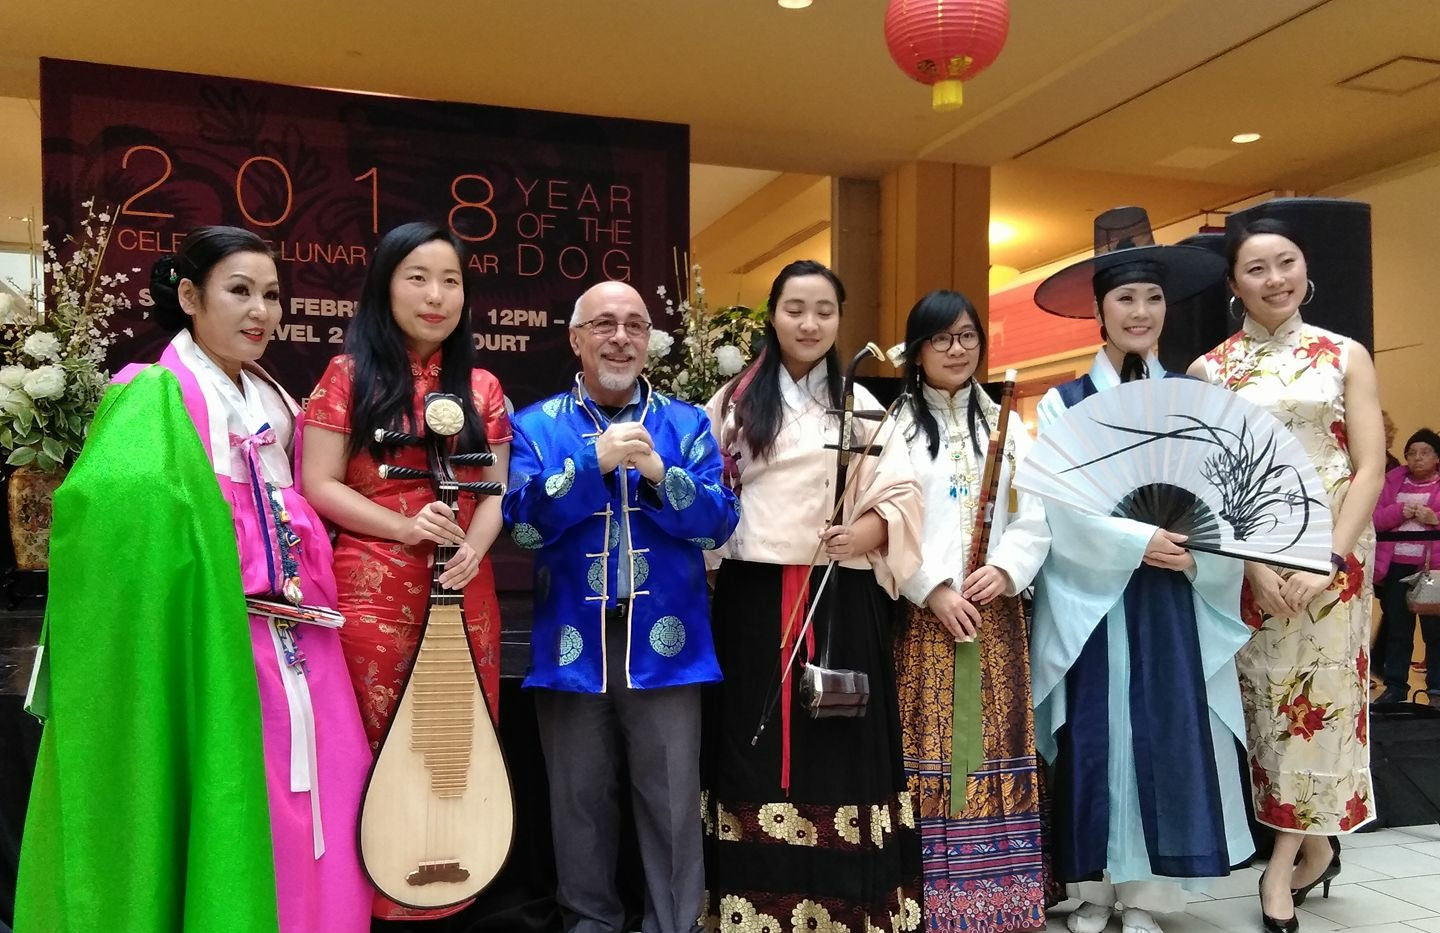 Lunar New Year Celebration - Queens Center Mall